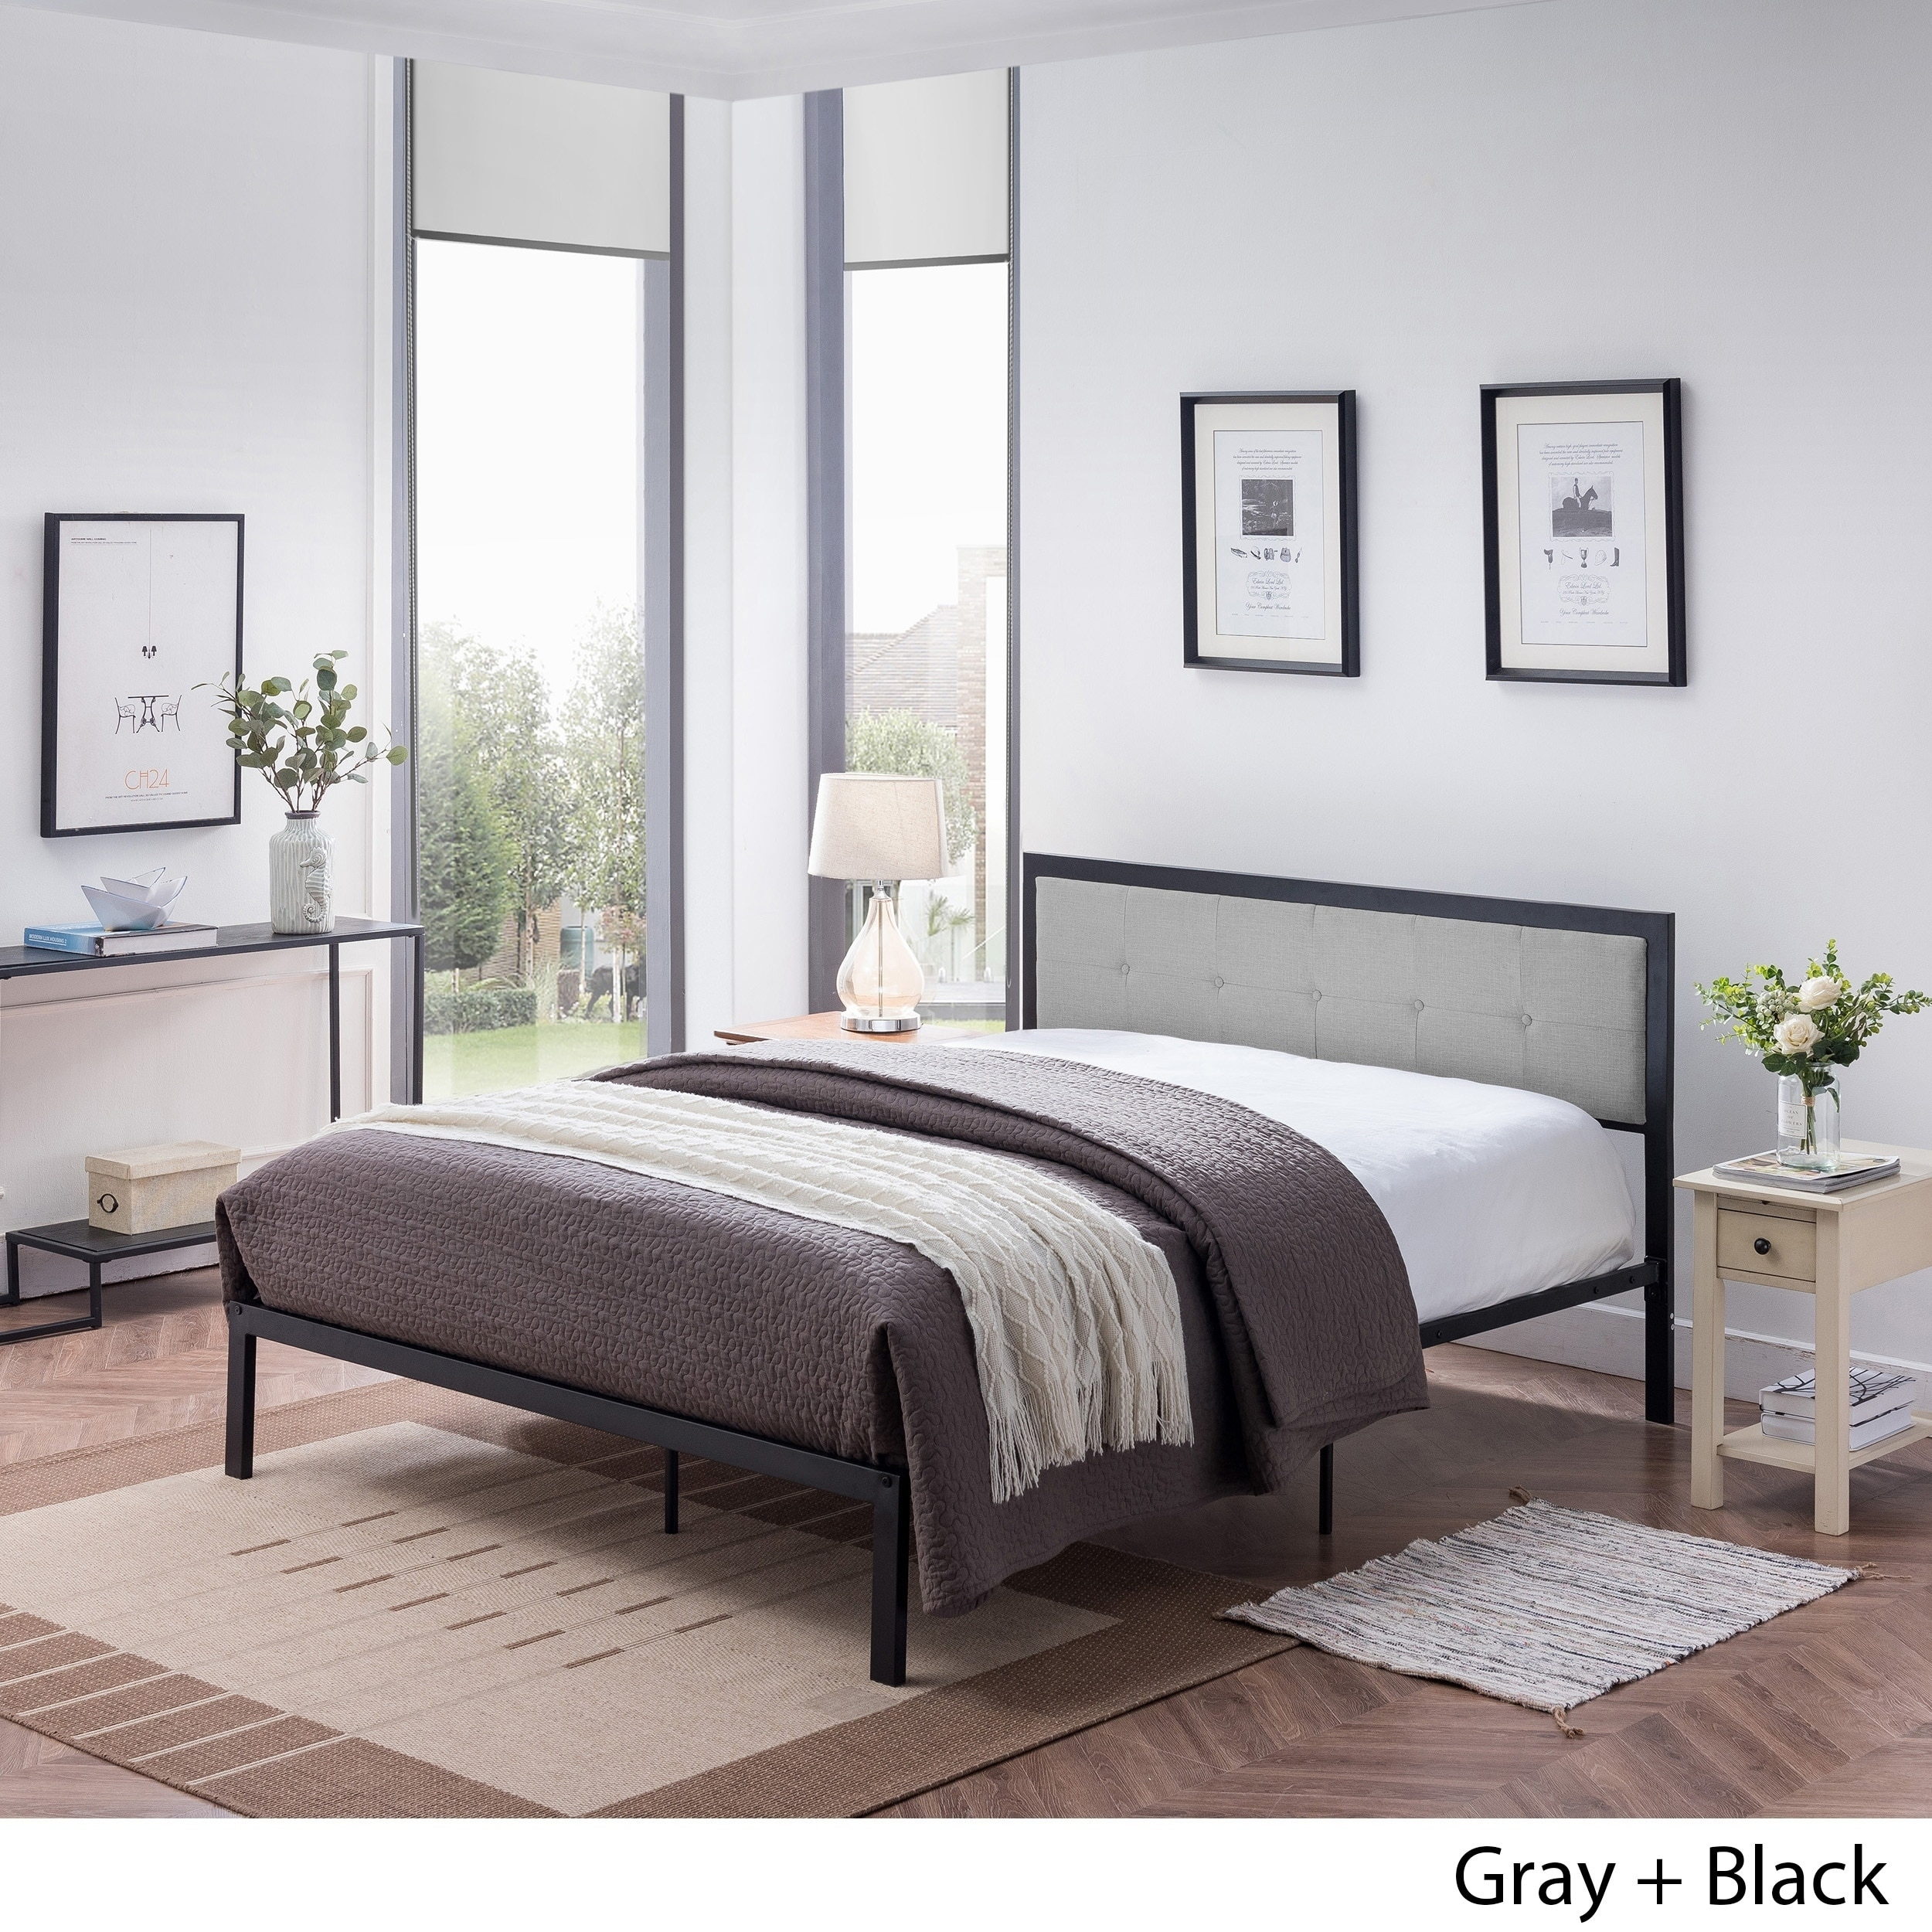 Haroun Contemporary Upholstered Headboard Queen Size Bed Frame By Christopher Knight Home On Sale Overstock 24115157